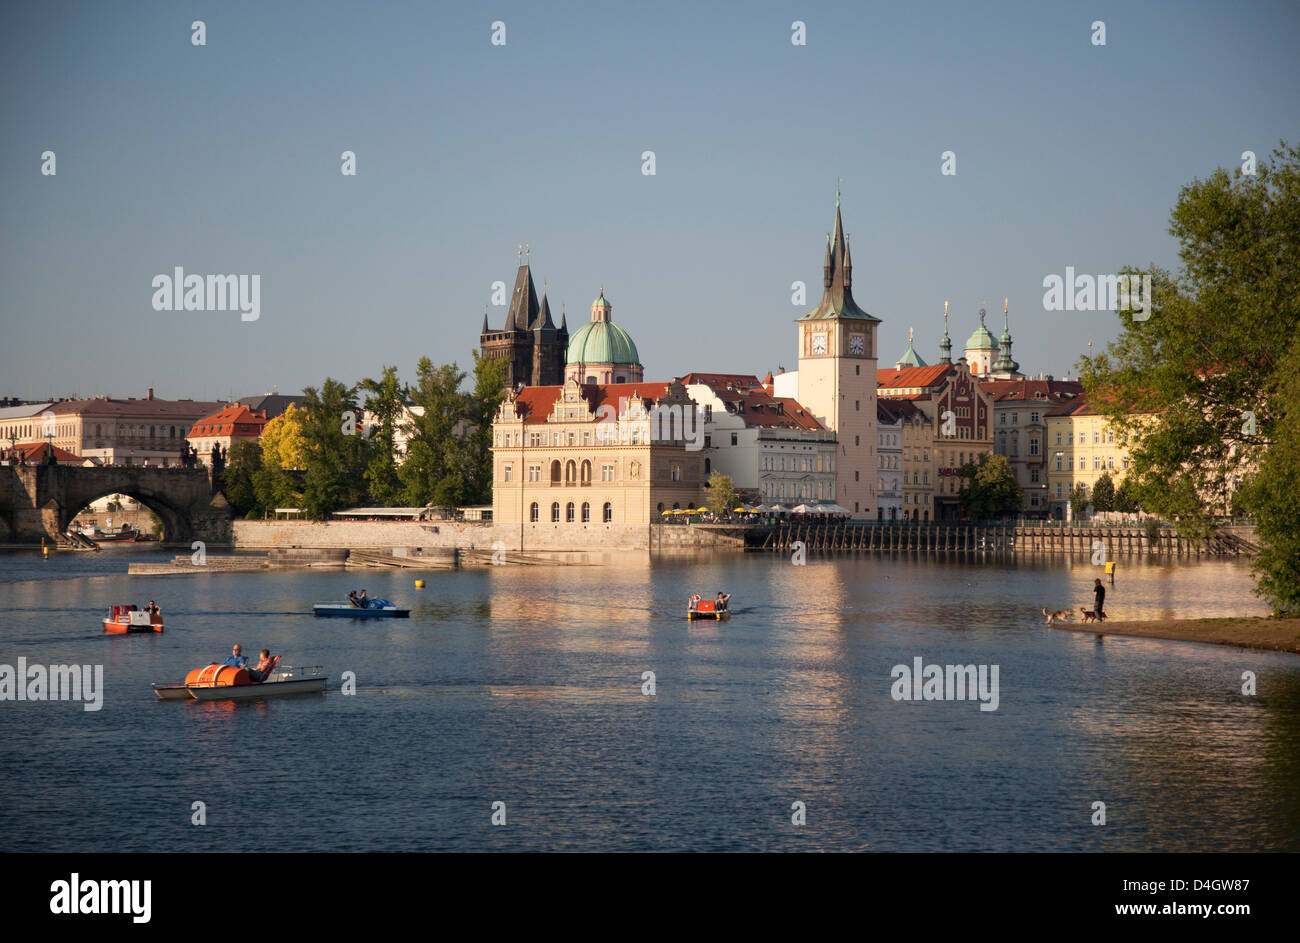 Vltava River and Smetana Museum, Prague, Czech Republic - Stock Image